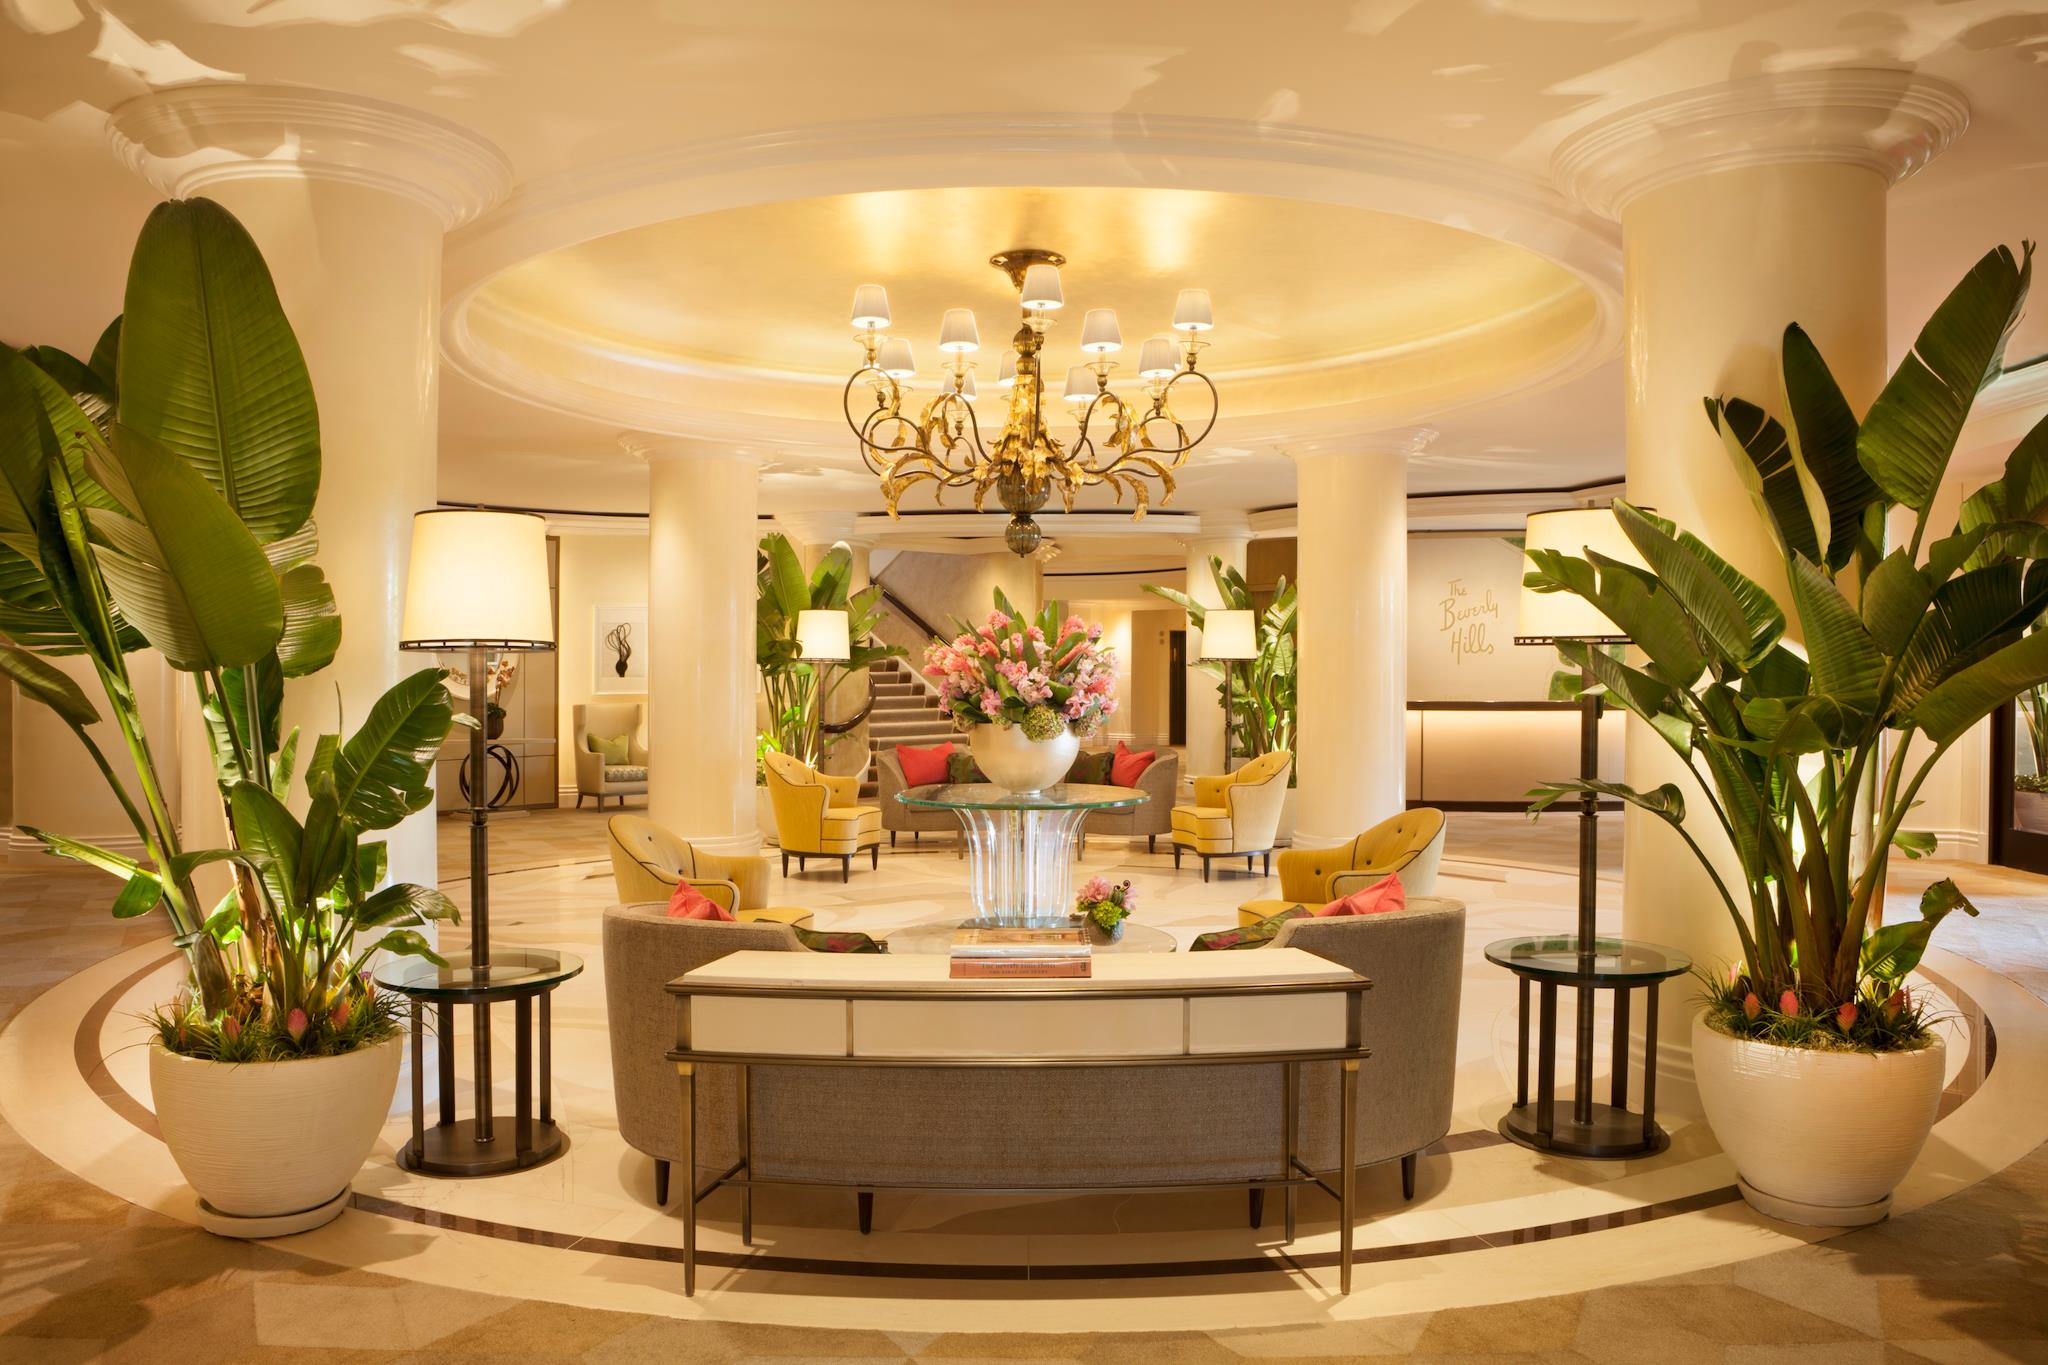 Tropical modern d cor at the beverly hills hotel for Decor interior design